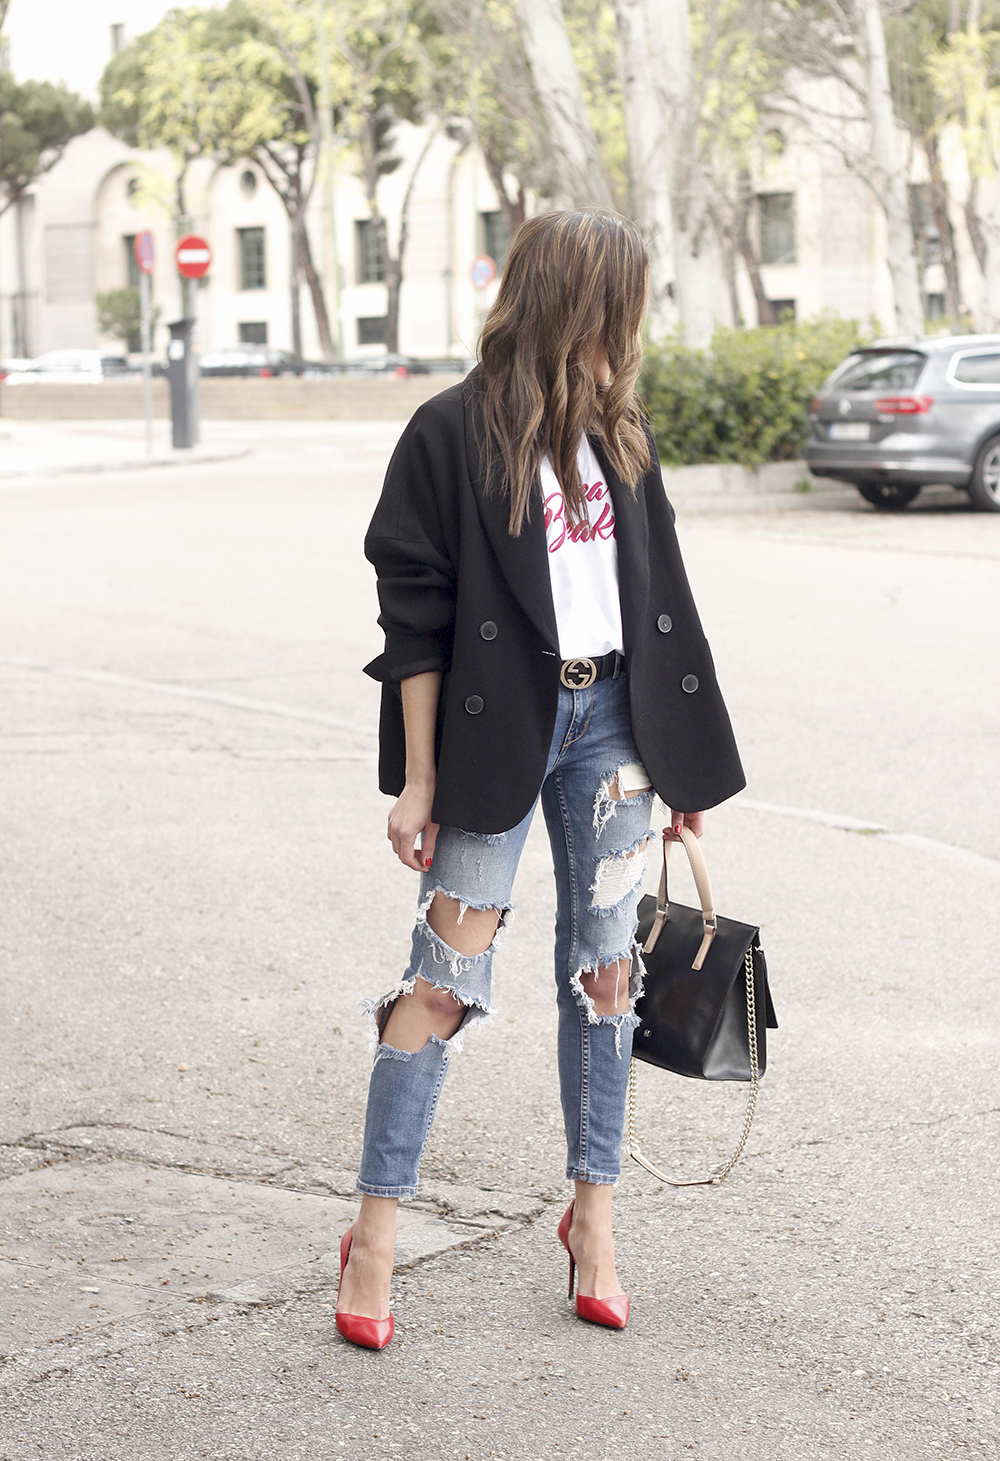 black blazer mango t-shirt heels purificación garcía bag accessories ripped jeans outfit style fashion03